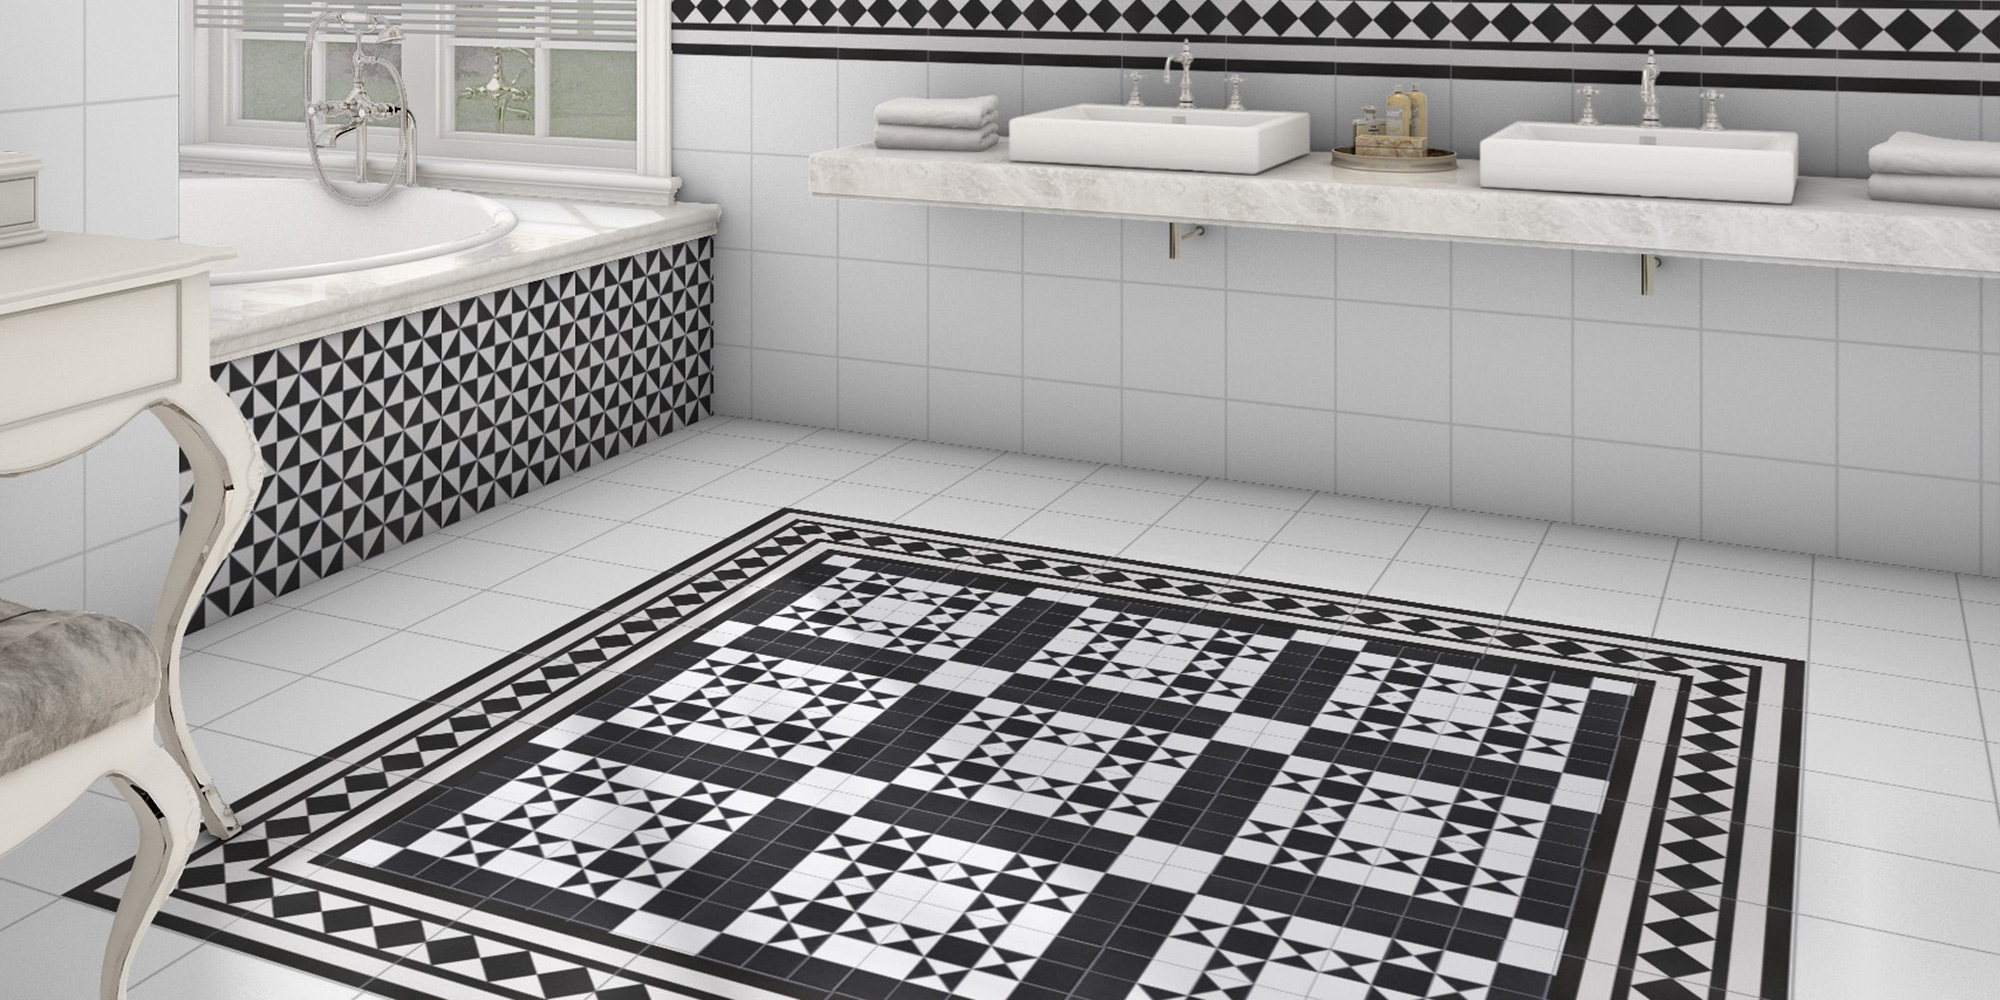 Bristol Black 25x25. Victorian style patterned floor tiles.